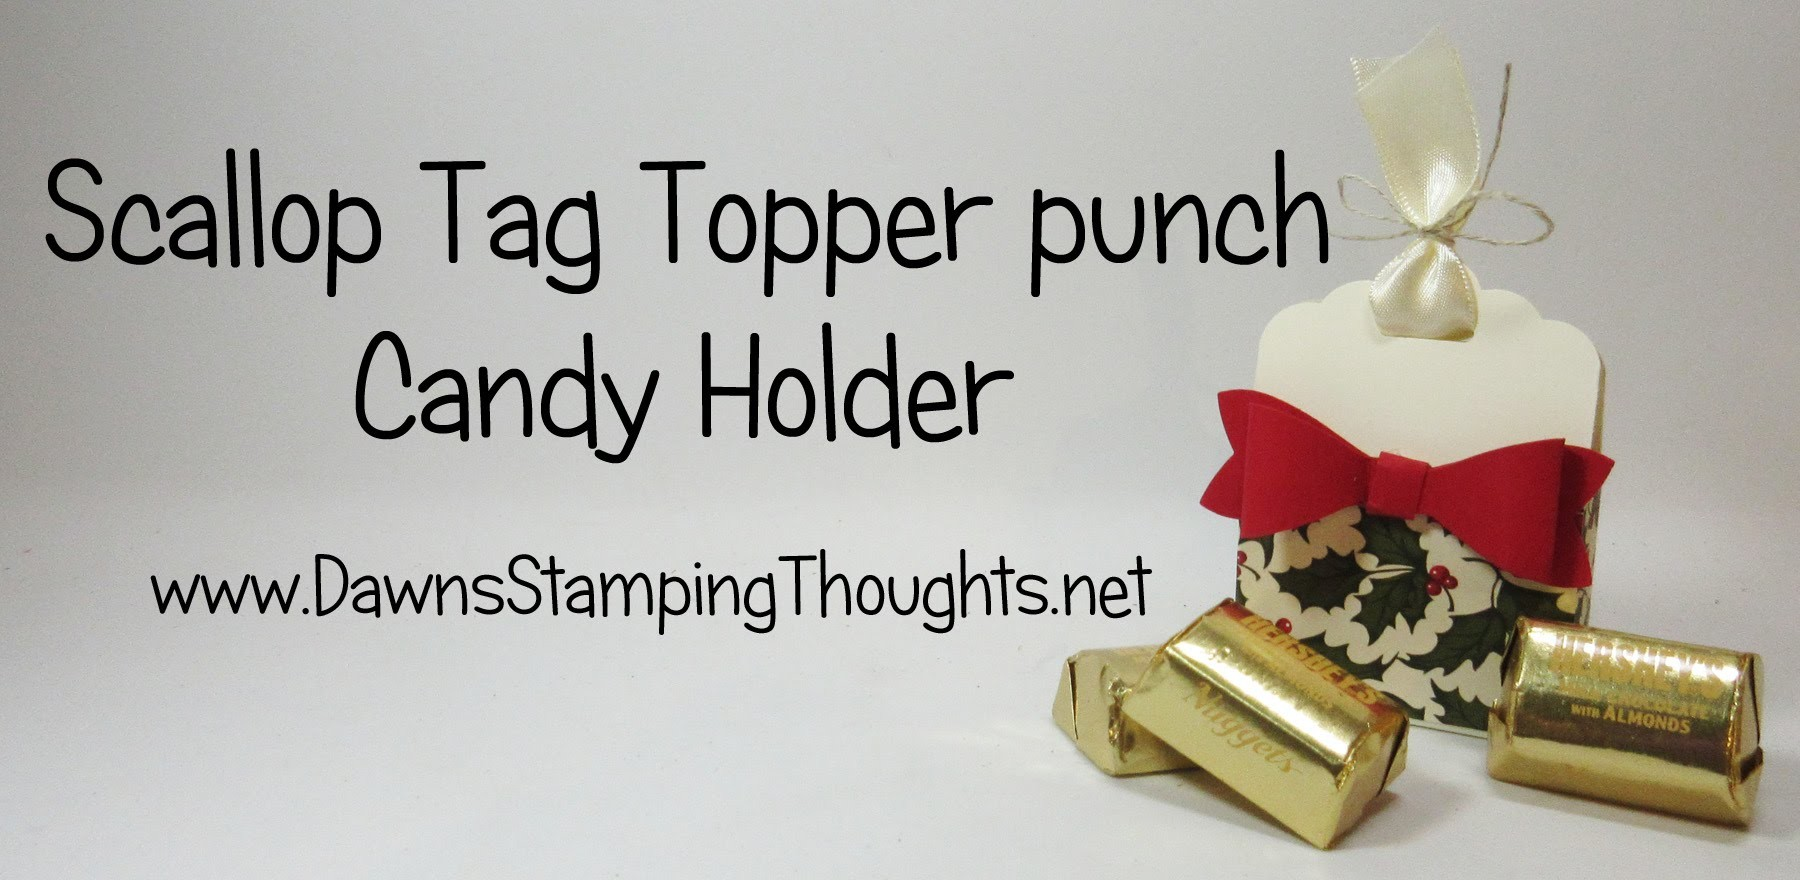 Candy Holder featuring Scallop Tag Topper Punch from Stampin'Up!